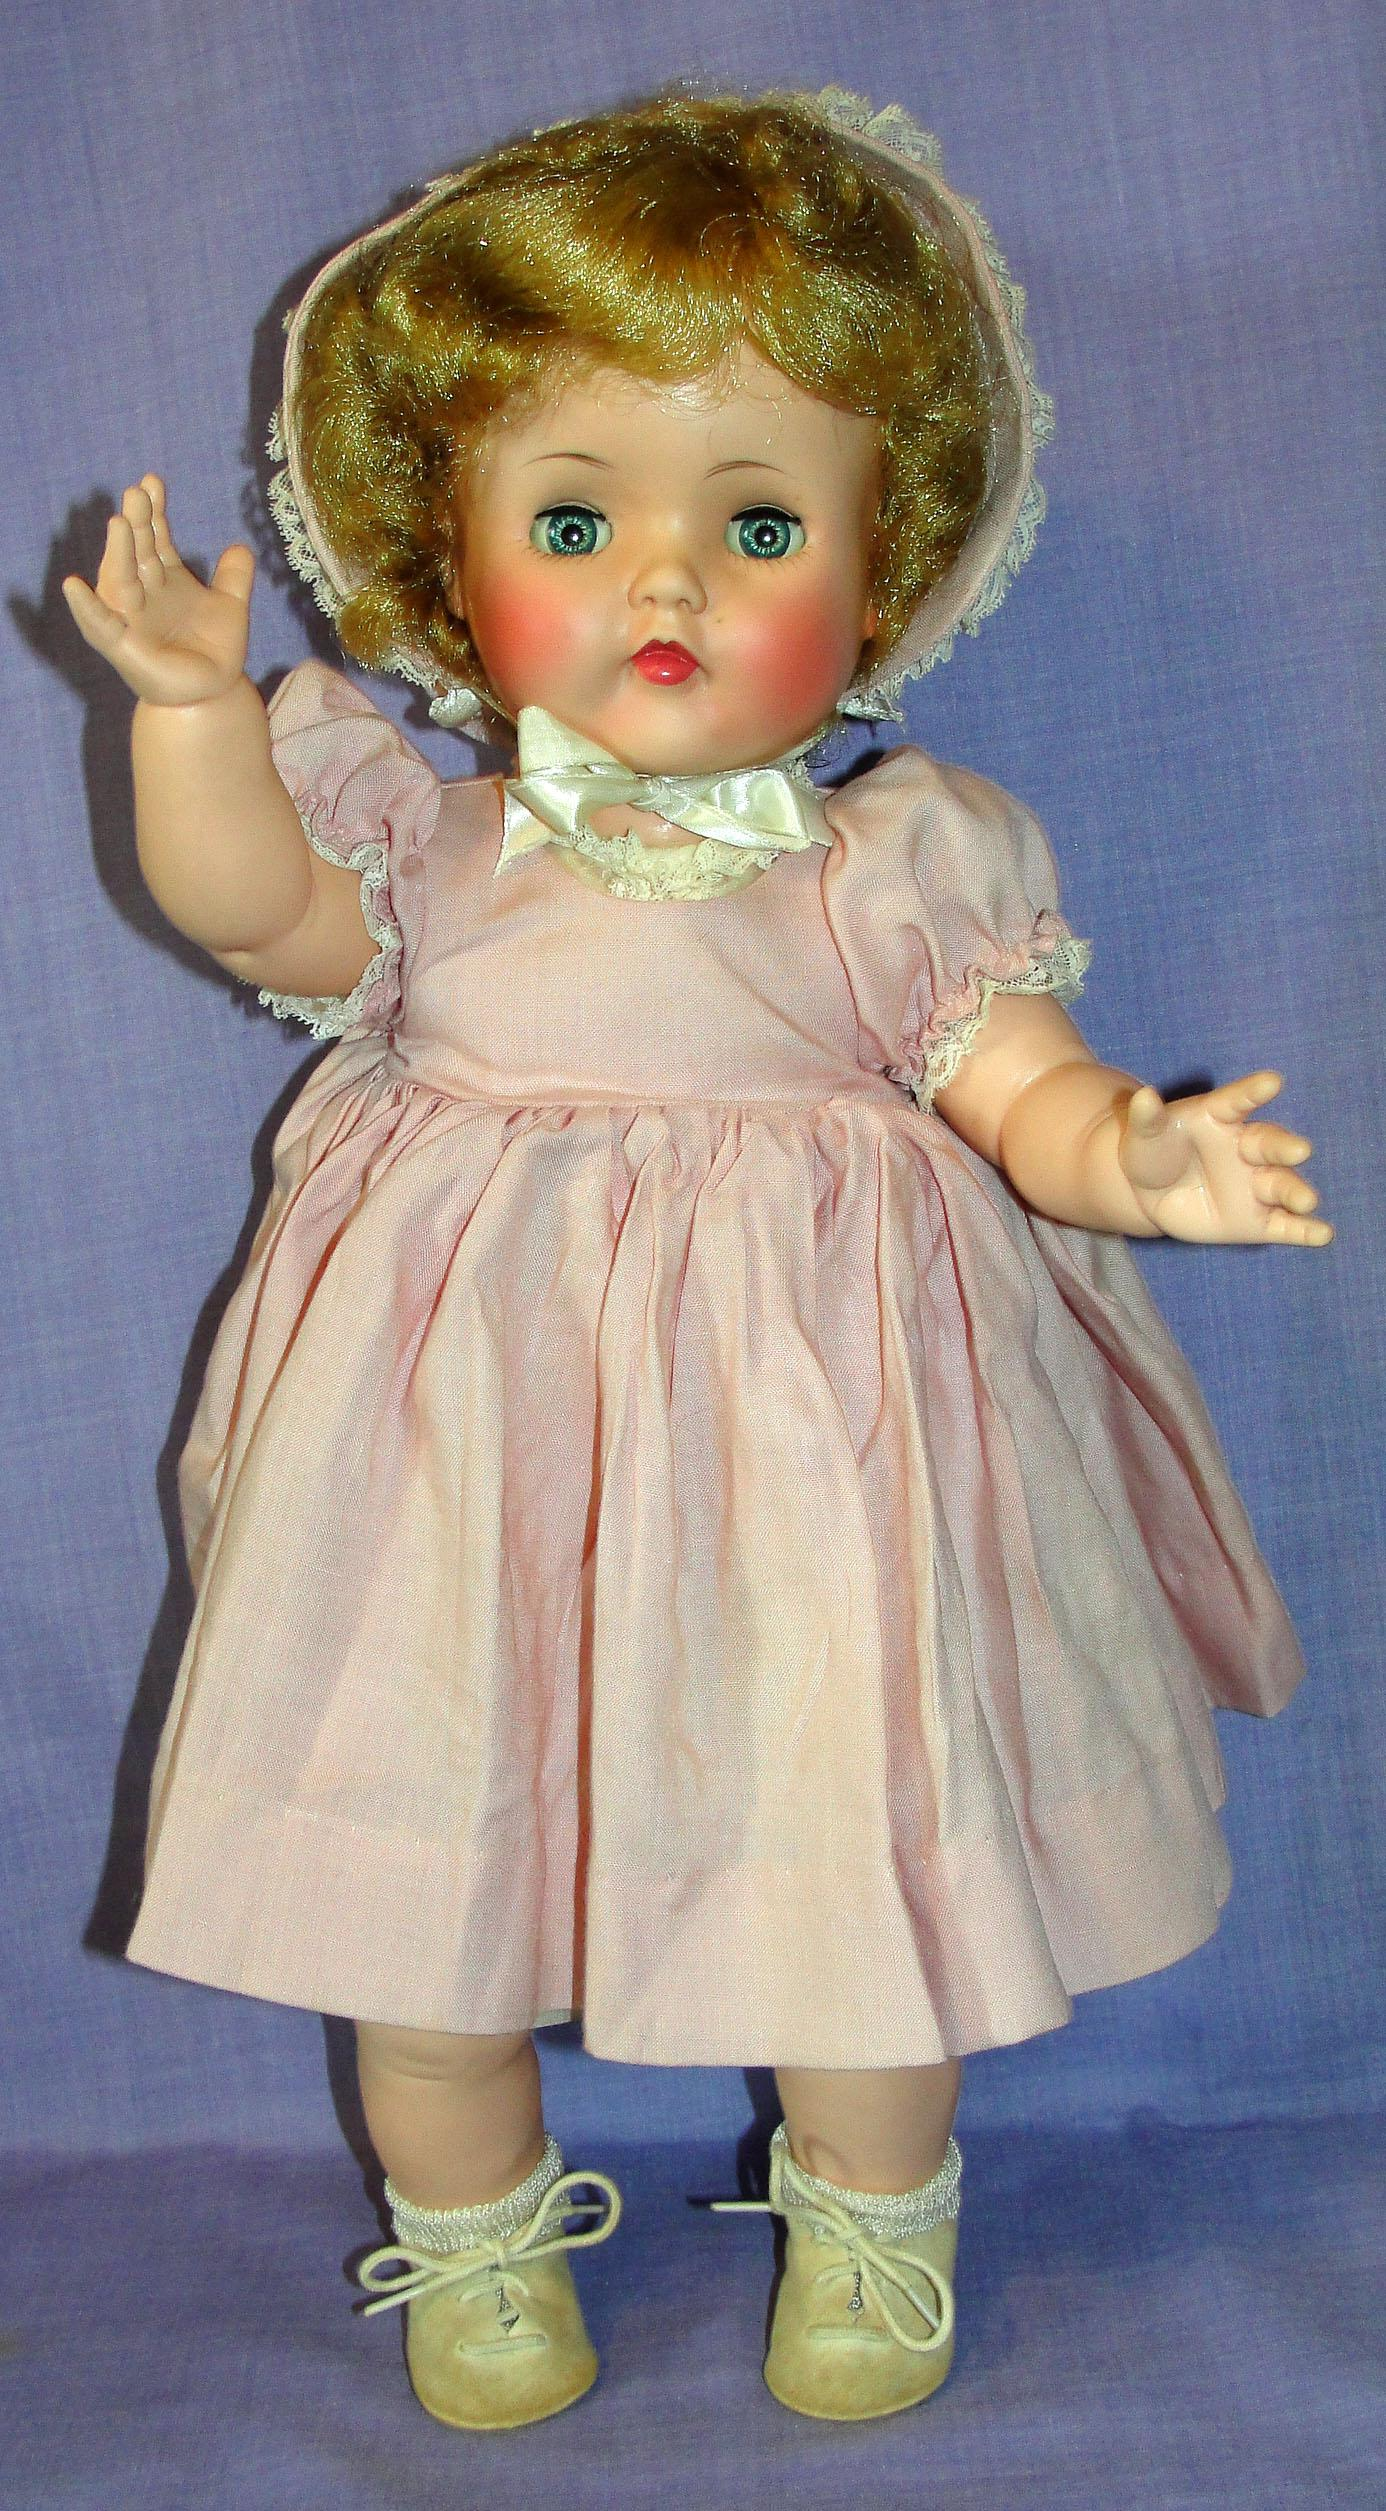 Rare 1954 Madame Alexander Vinyl Bonnie Toddler Doll